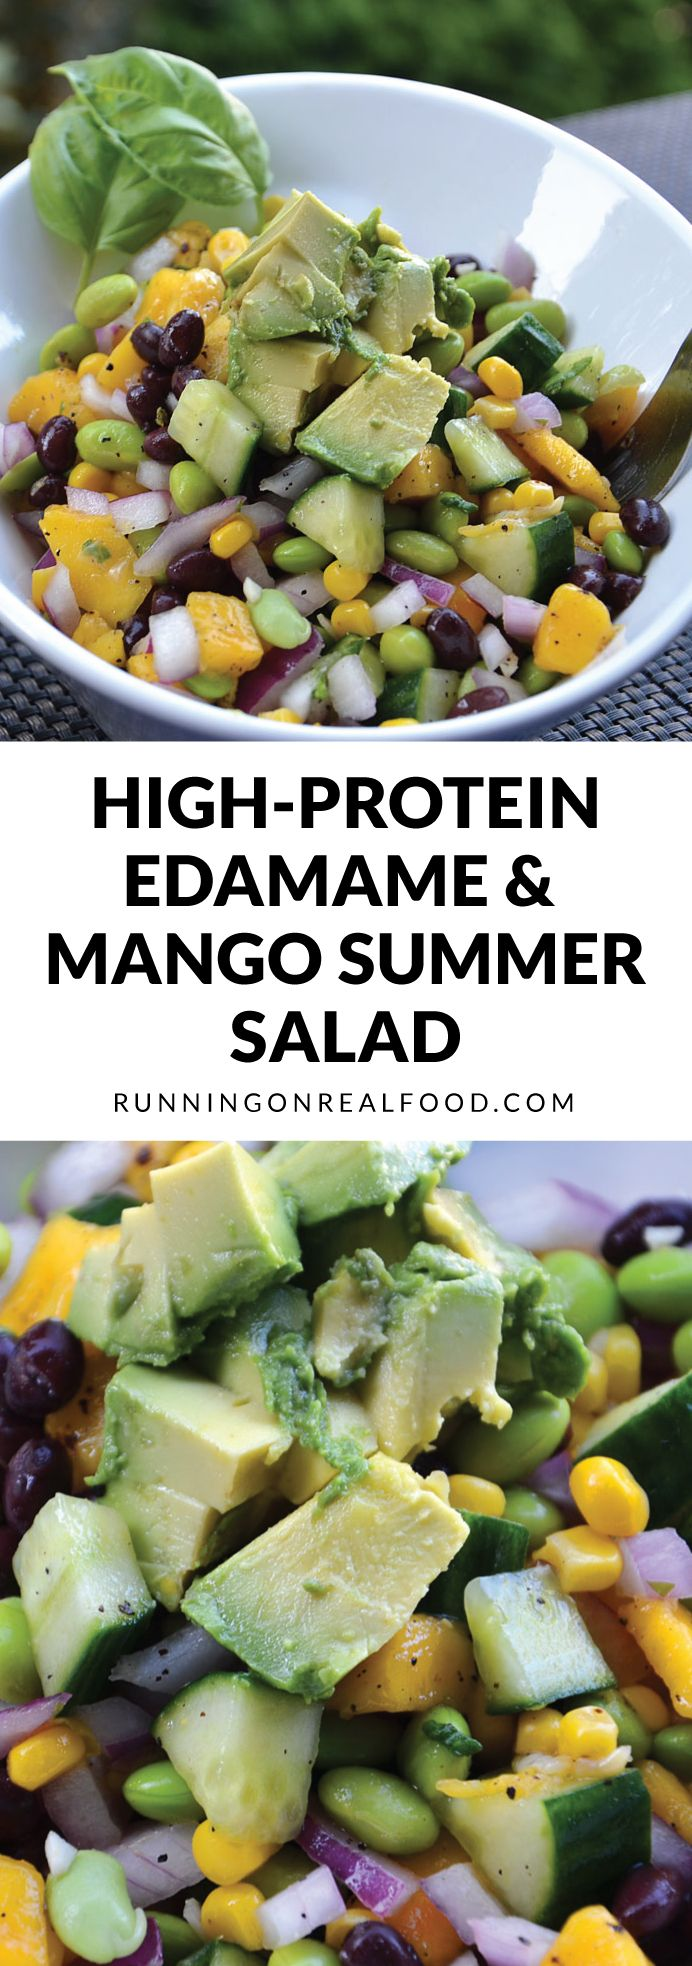 This high-protein edamame mango salad is easy to make, fresh, tangy, vegan, low in fat and perfect for summer picnics and potlucks!